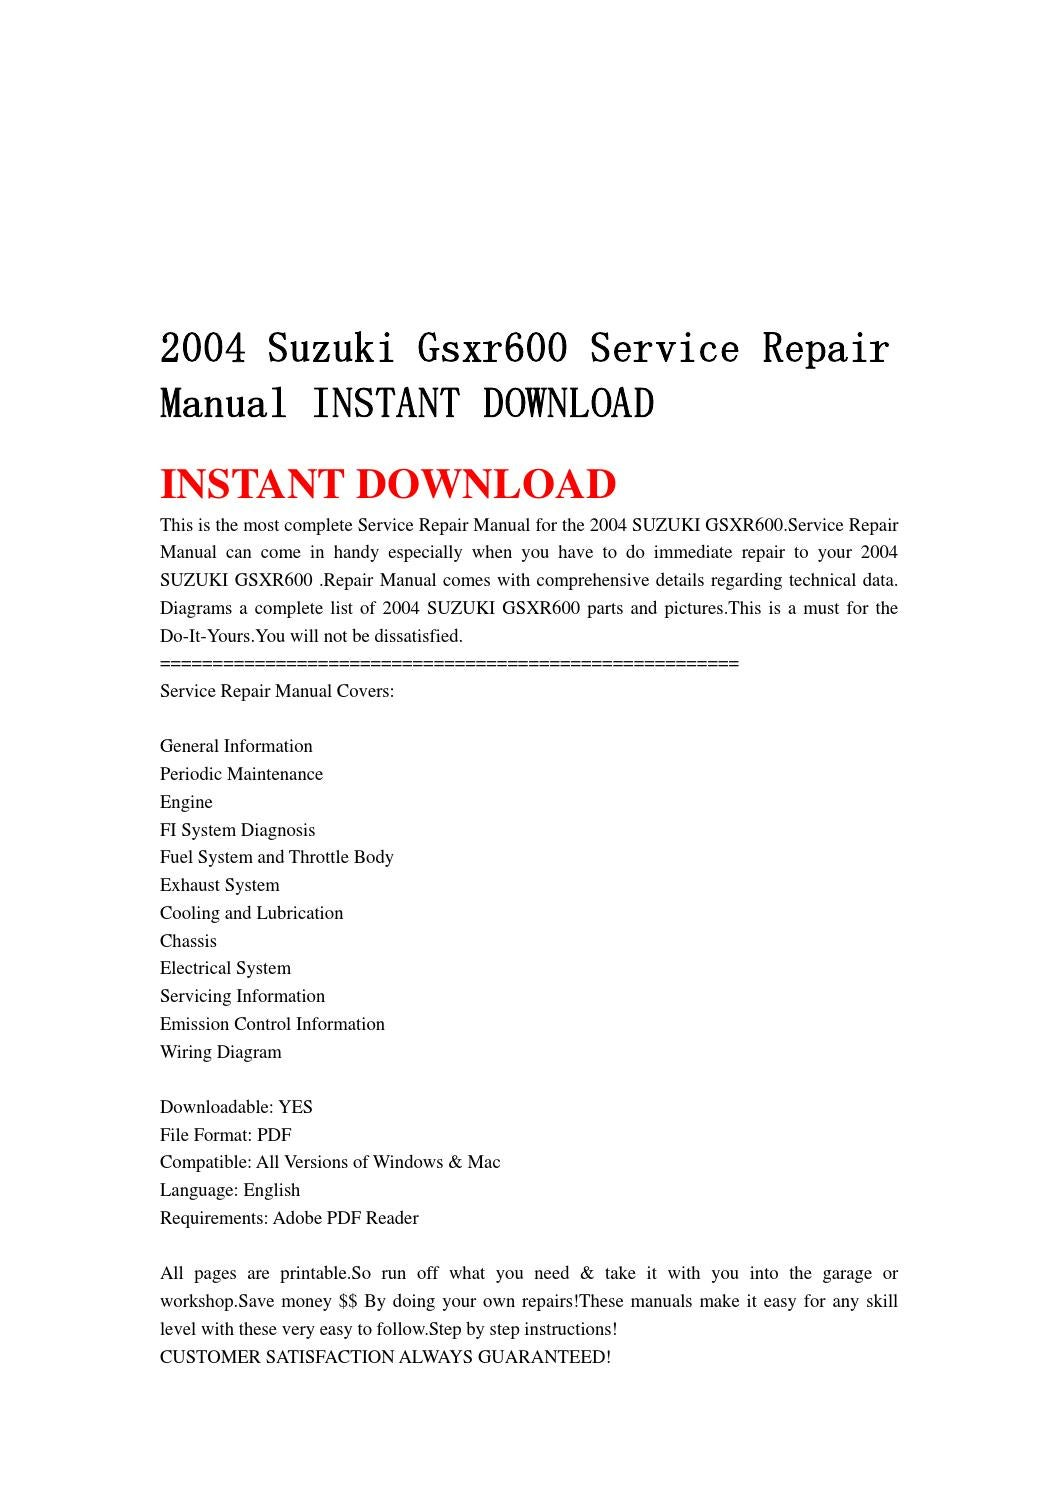 suzuki gsxr 600 wiring diagram 2004 suzuki gsxr600 service repair manual instant download by  2004 suzuki gsxr600 service repair